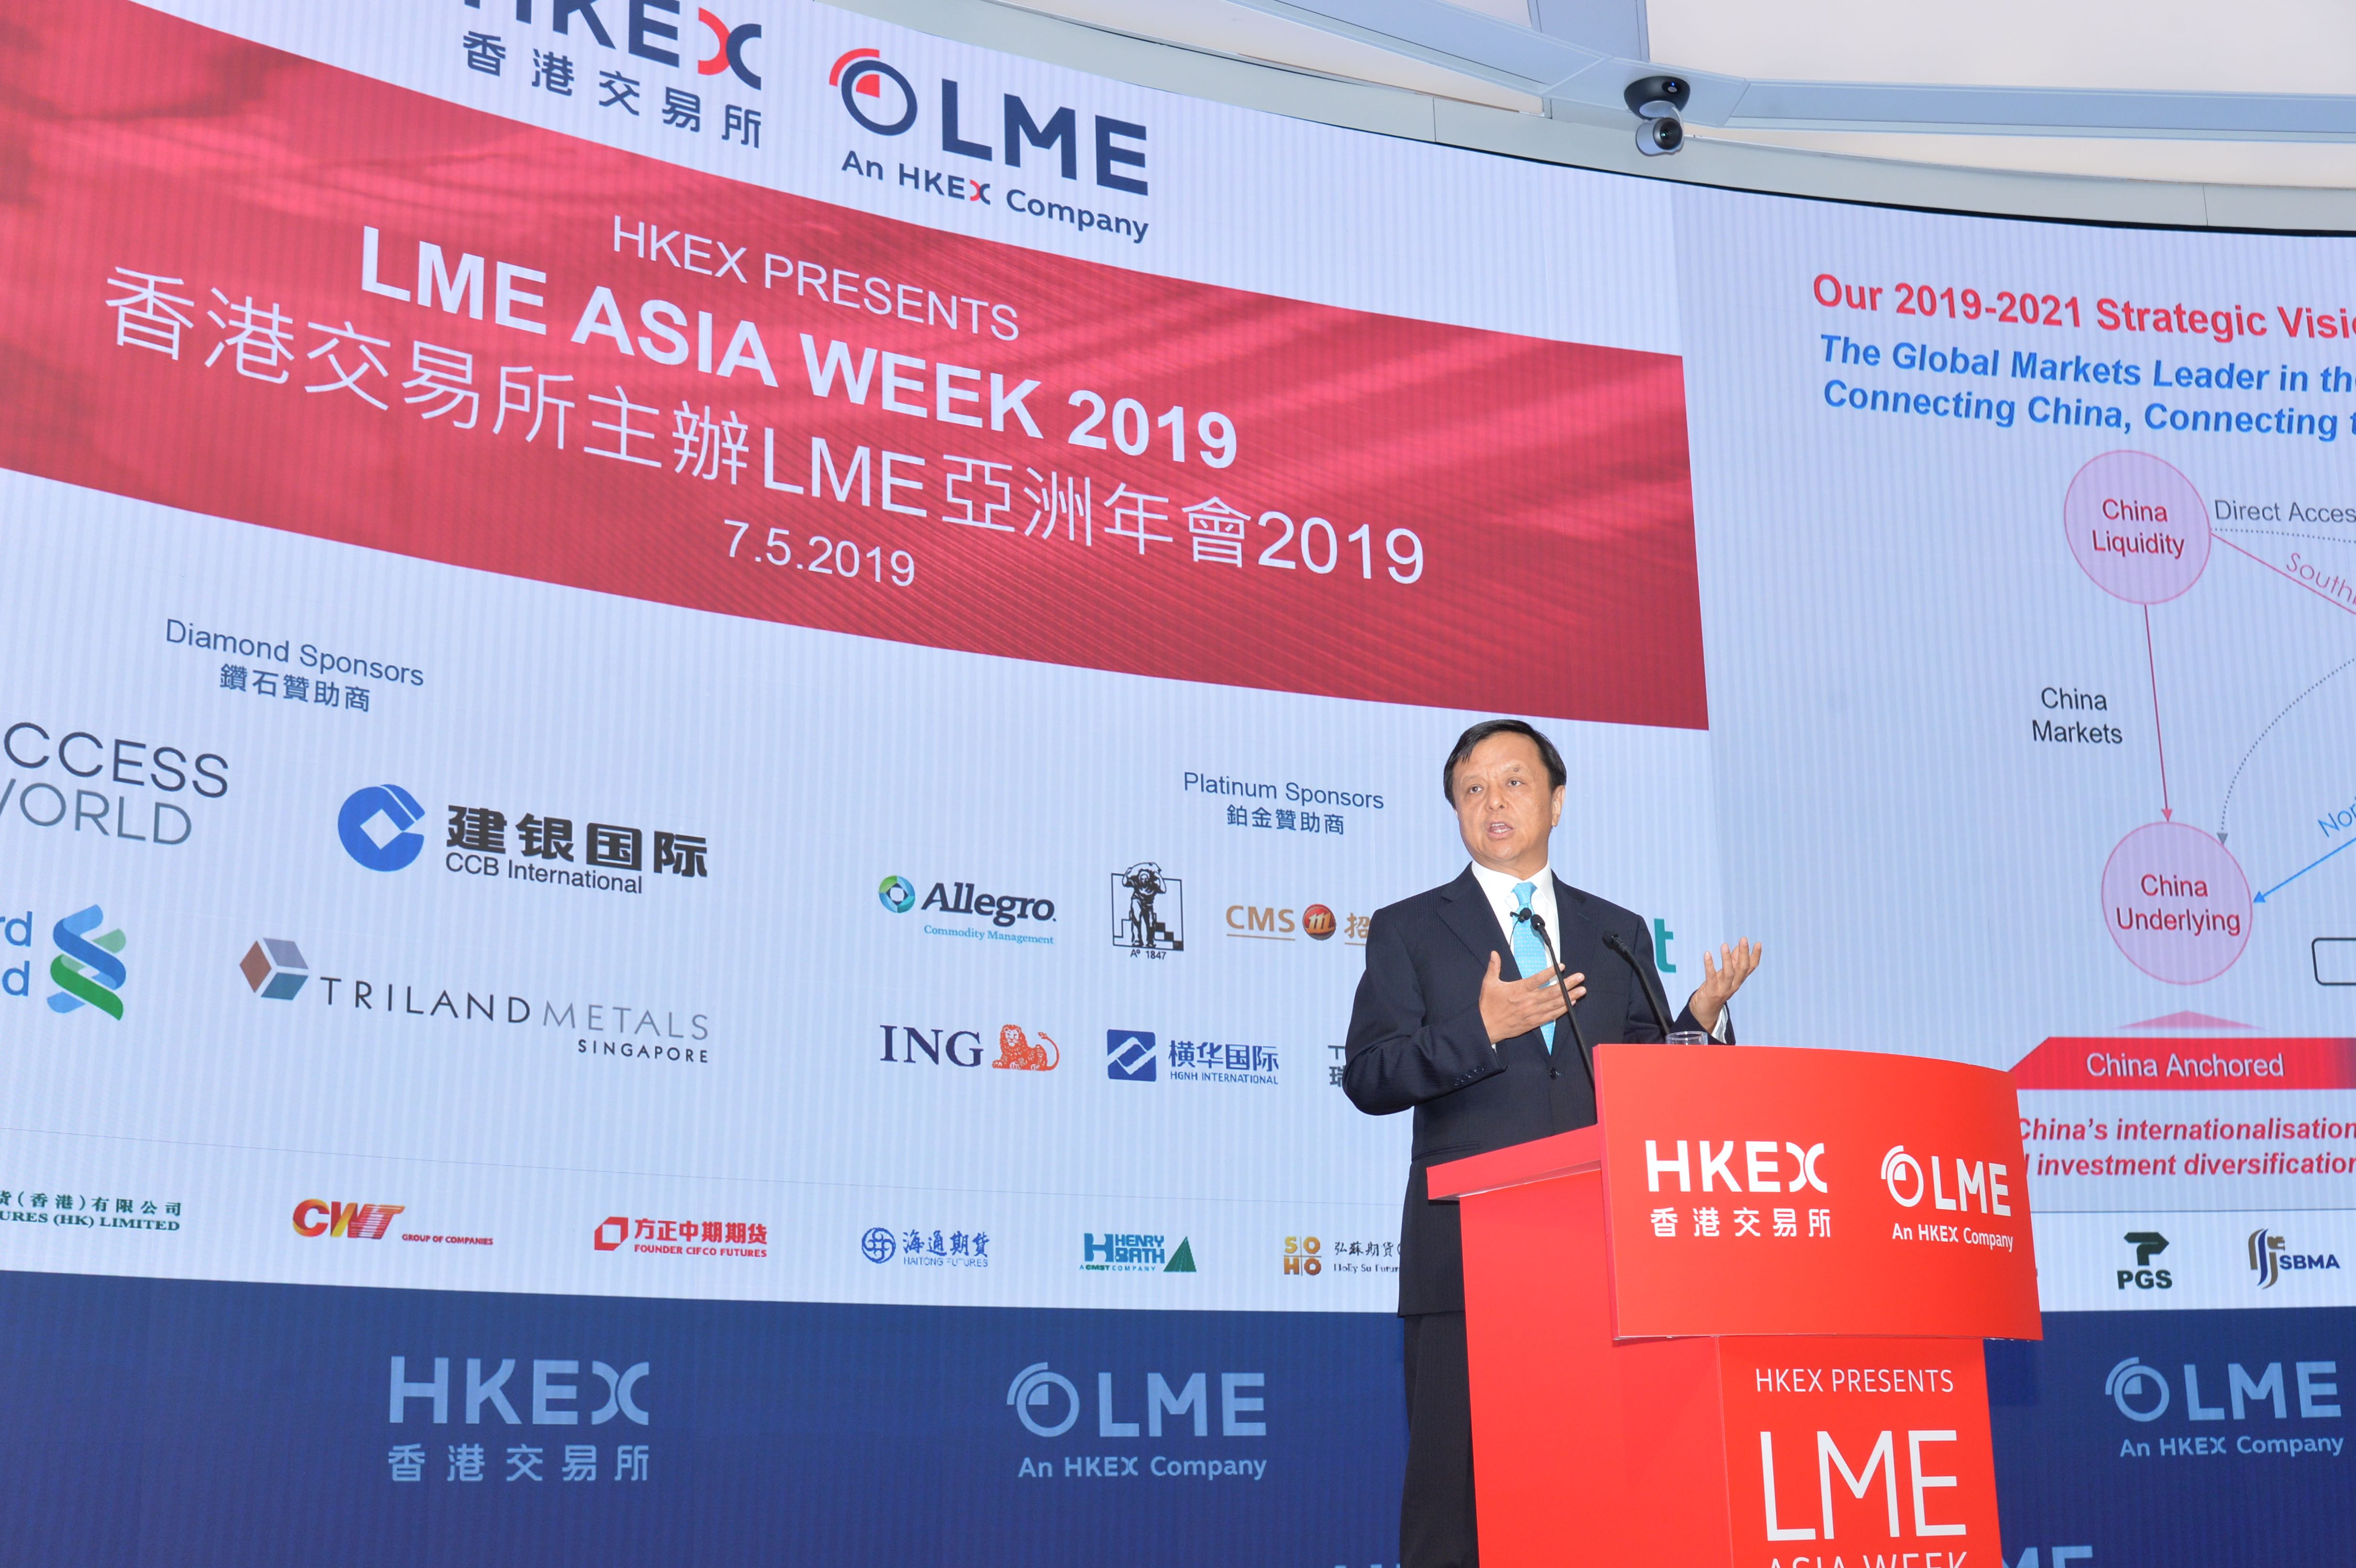 HKEX Chief Executive Charles Li introduces HKEX's initiatives in commodities area